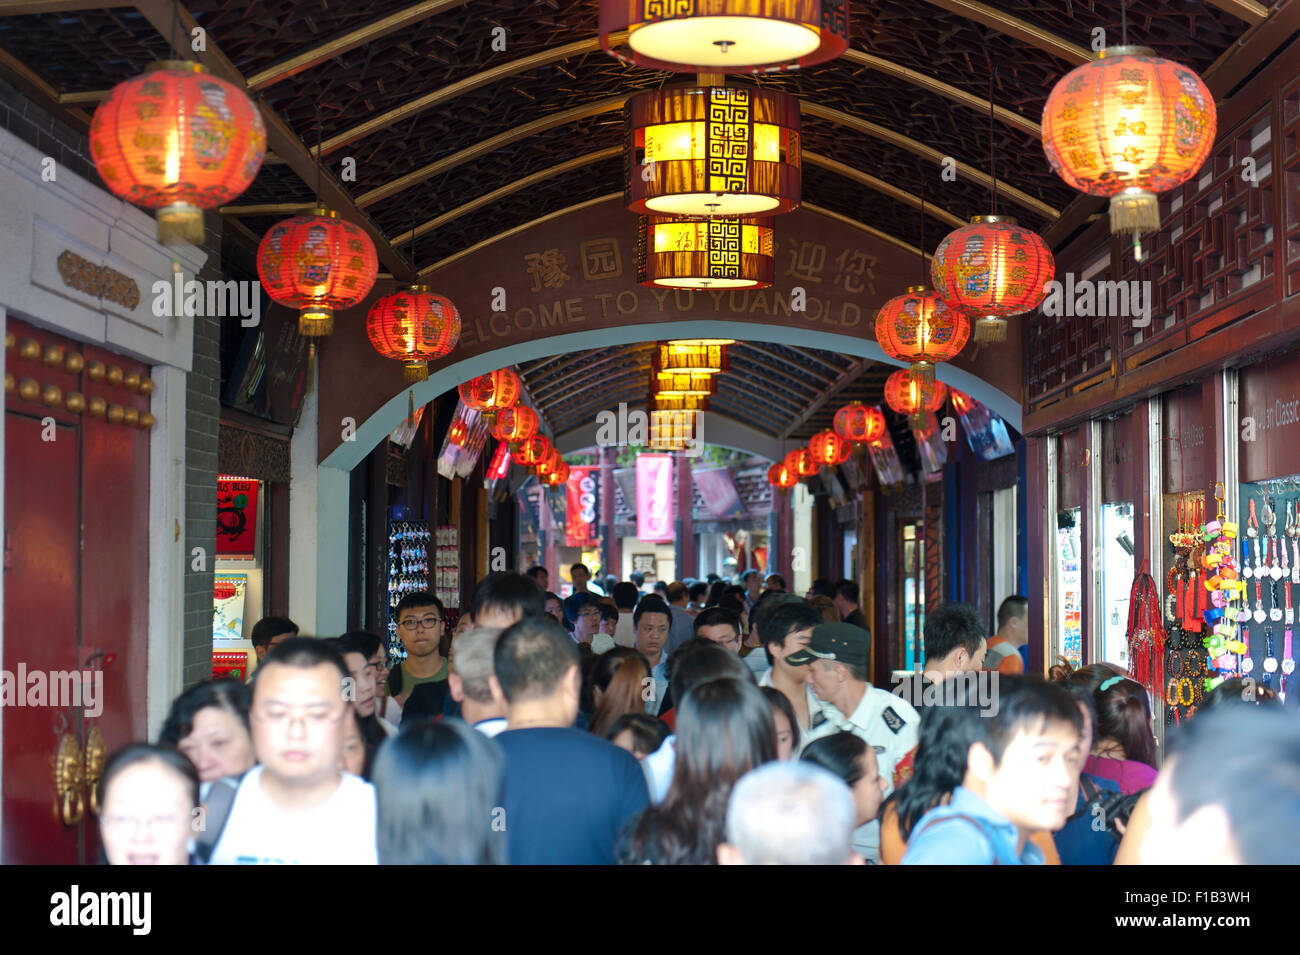 People in passage of Yu Yuan Old Street, Shanghai, China - Stock Image